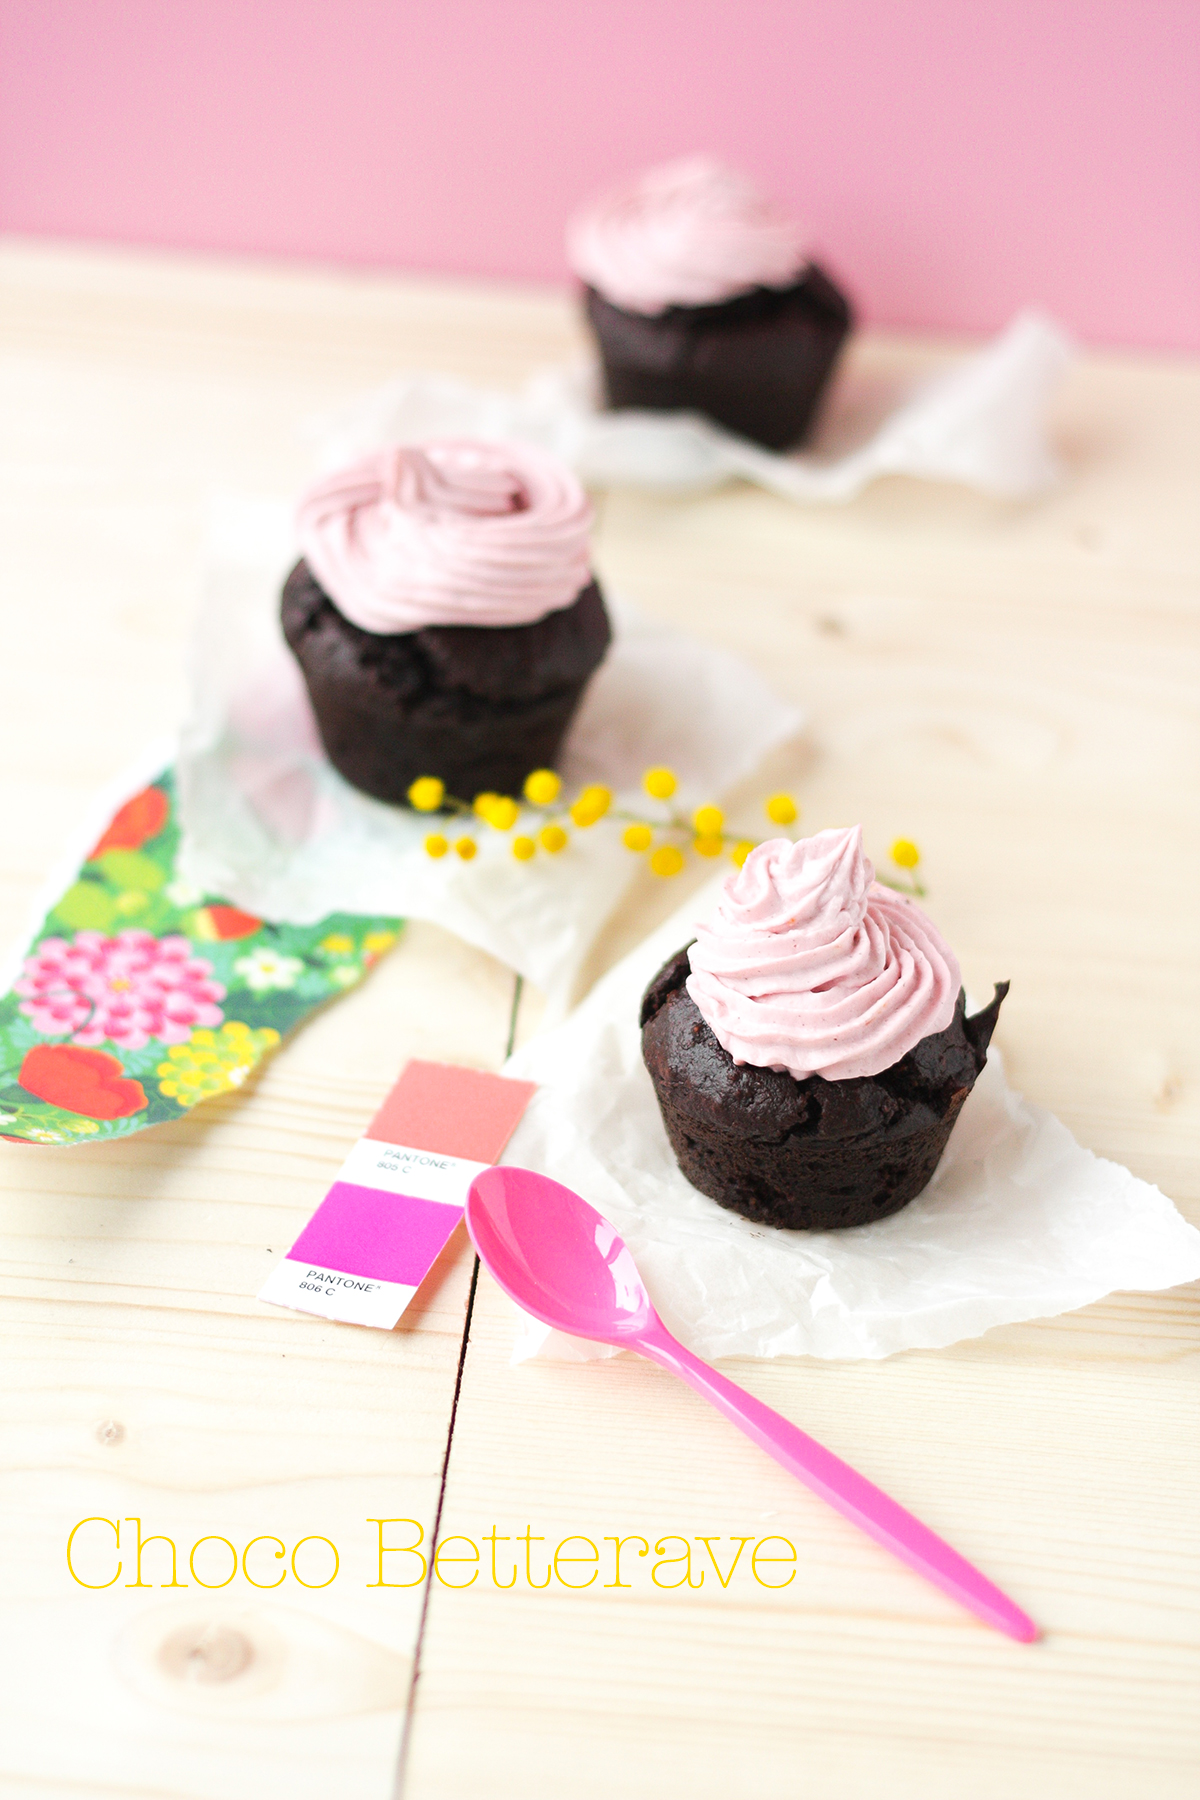 cupcakes-choco-betterave06